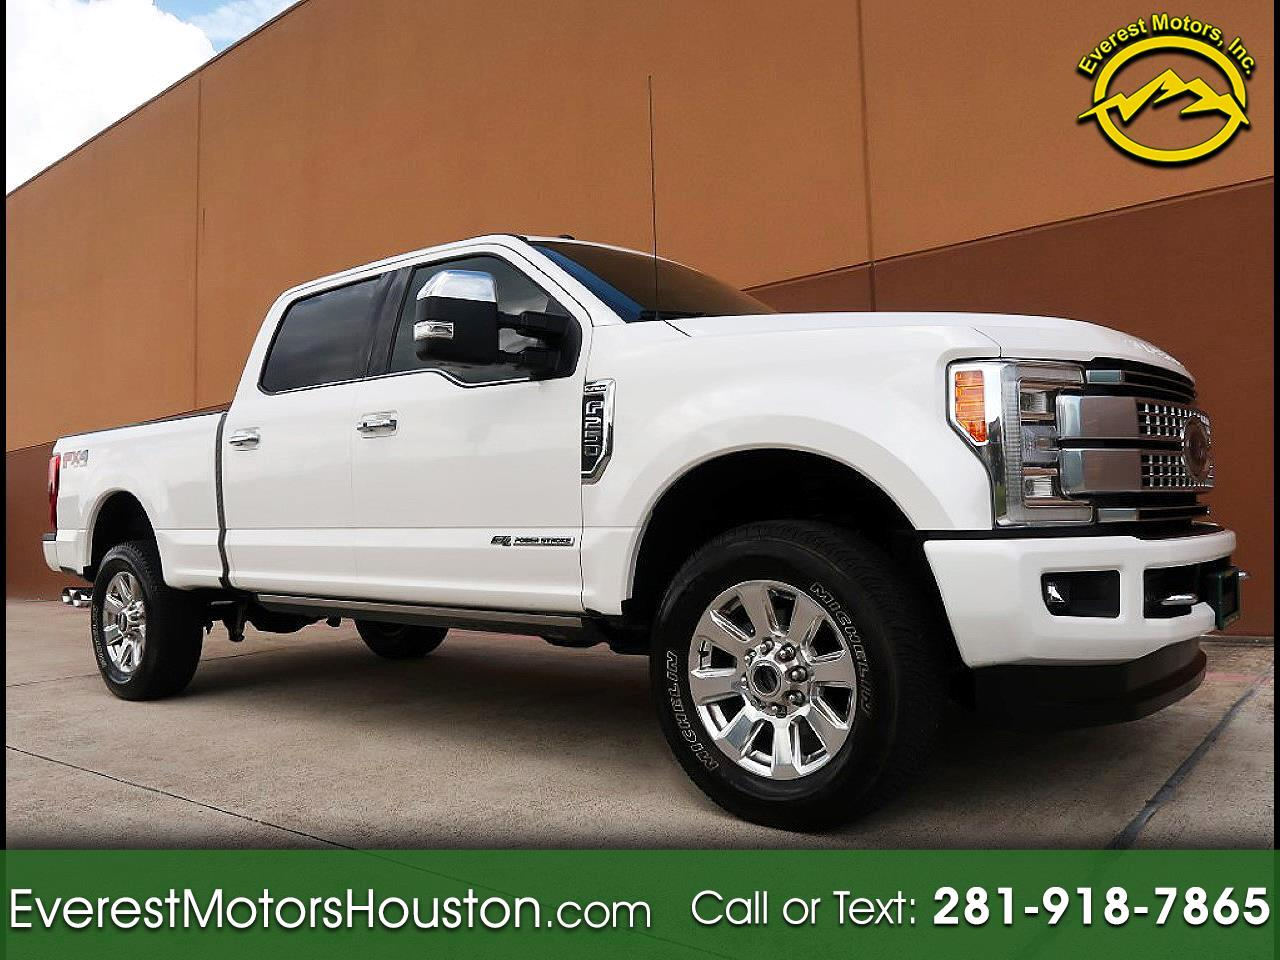 "2017 Ford Super Duty F-250 SRW 4WD Crew Cab 156"" Platinum"